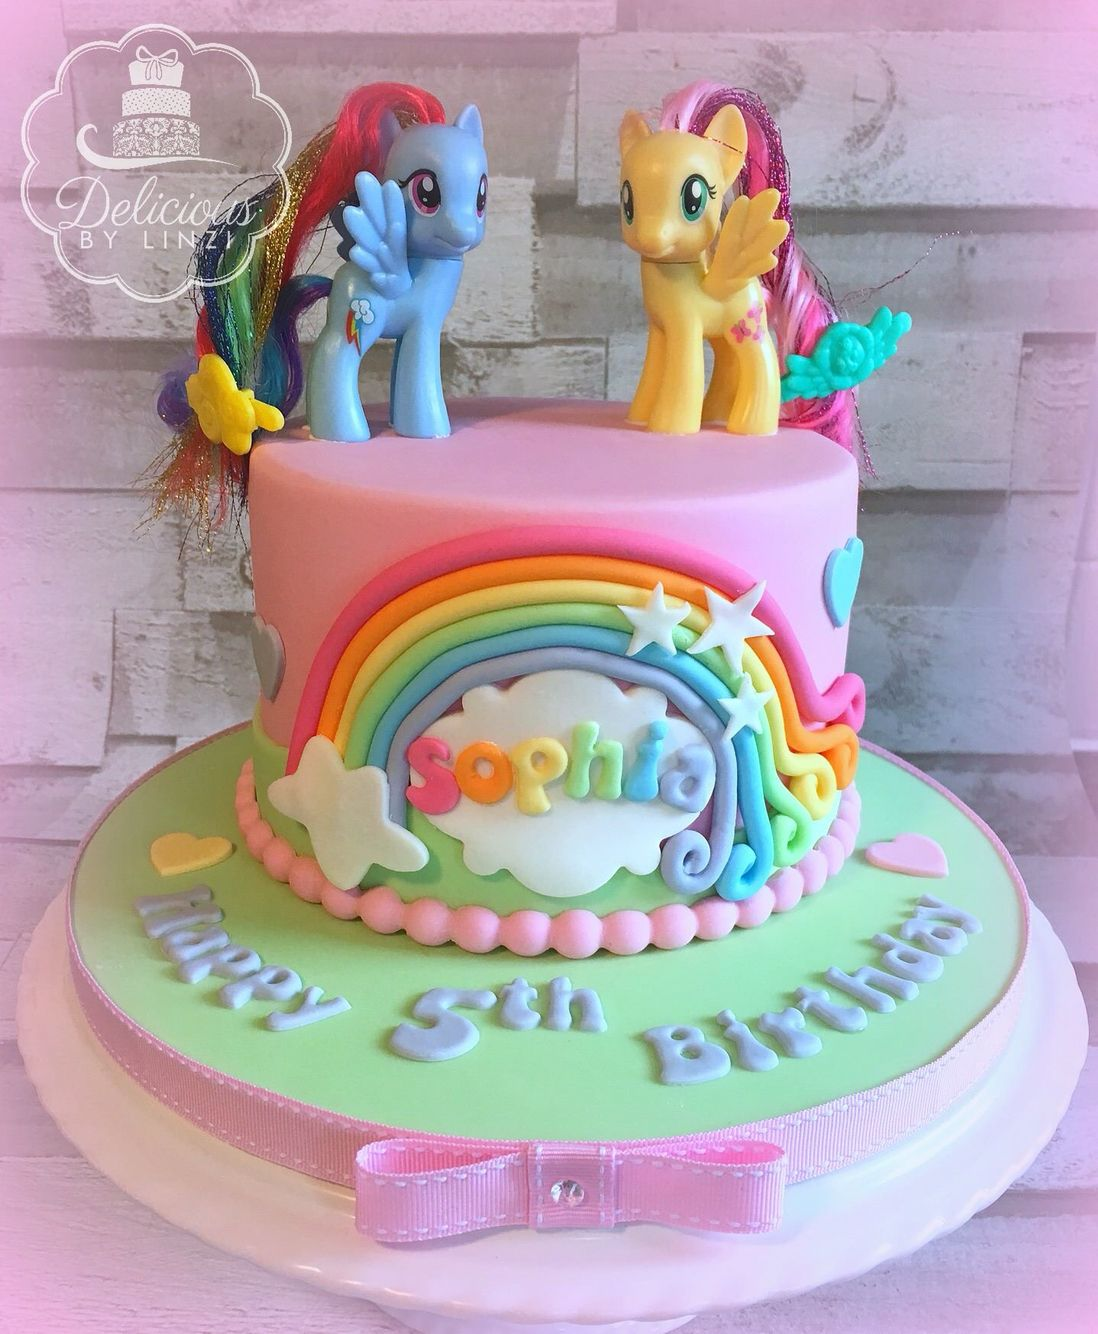 My Little Pony Birthday Cake.Pastel My Little Pony Birthday Cake Www Deliciousbylinzi Co